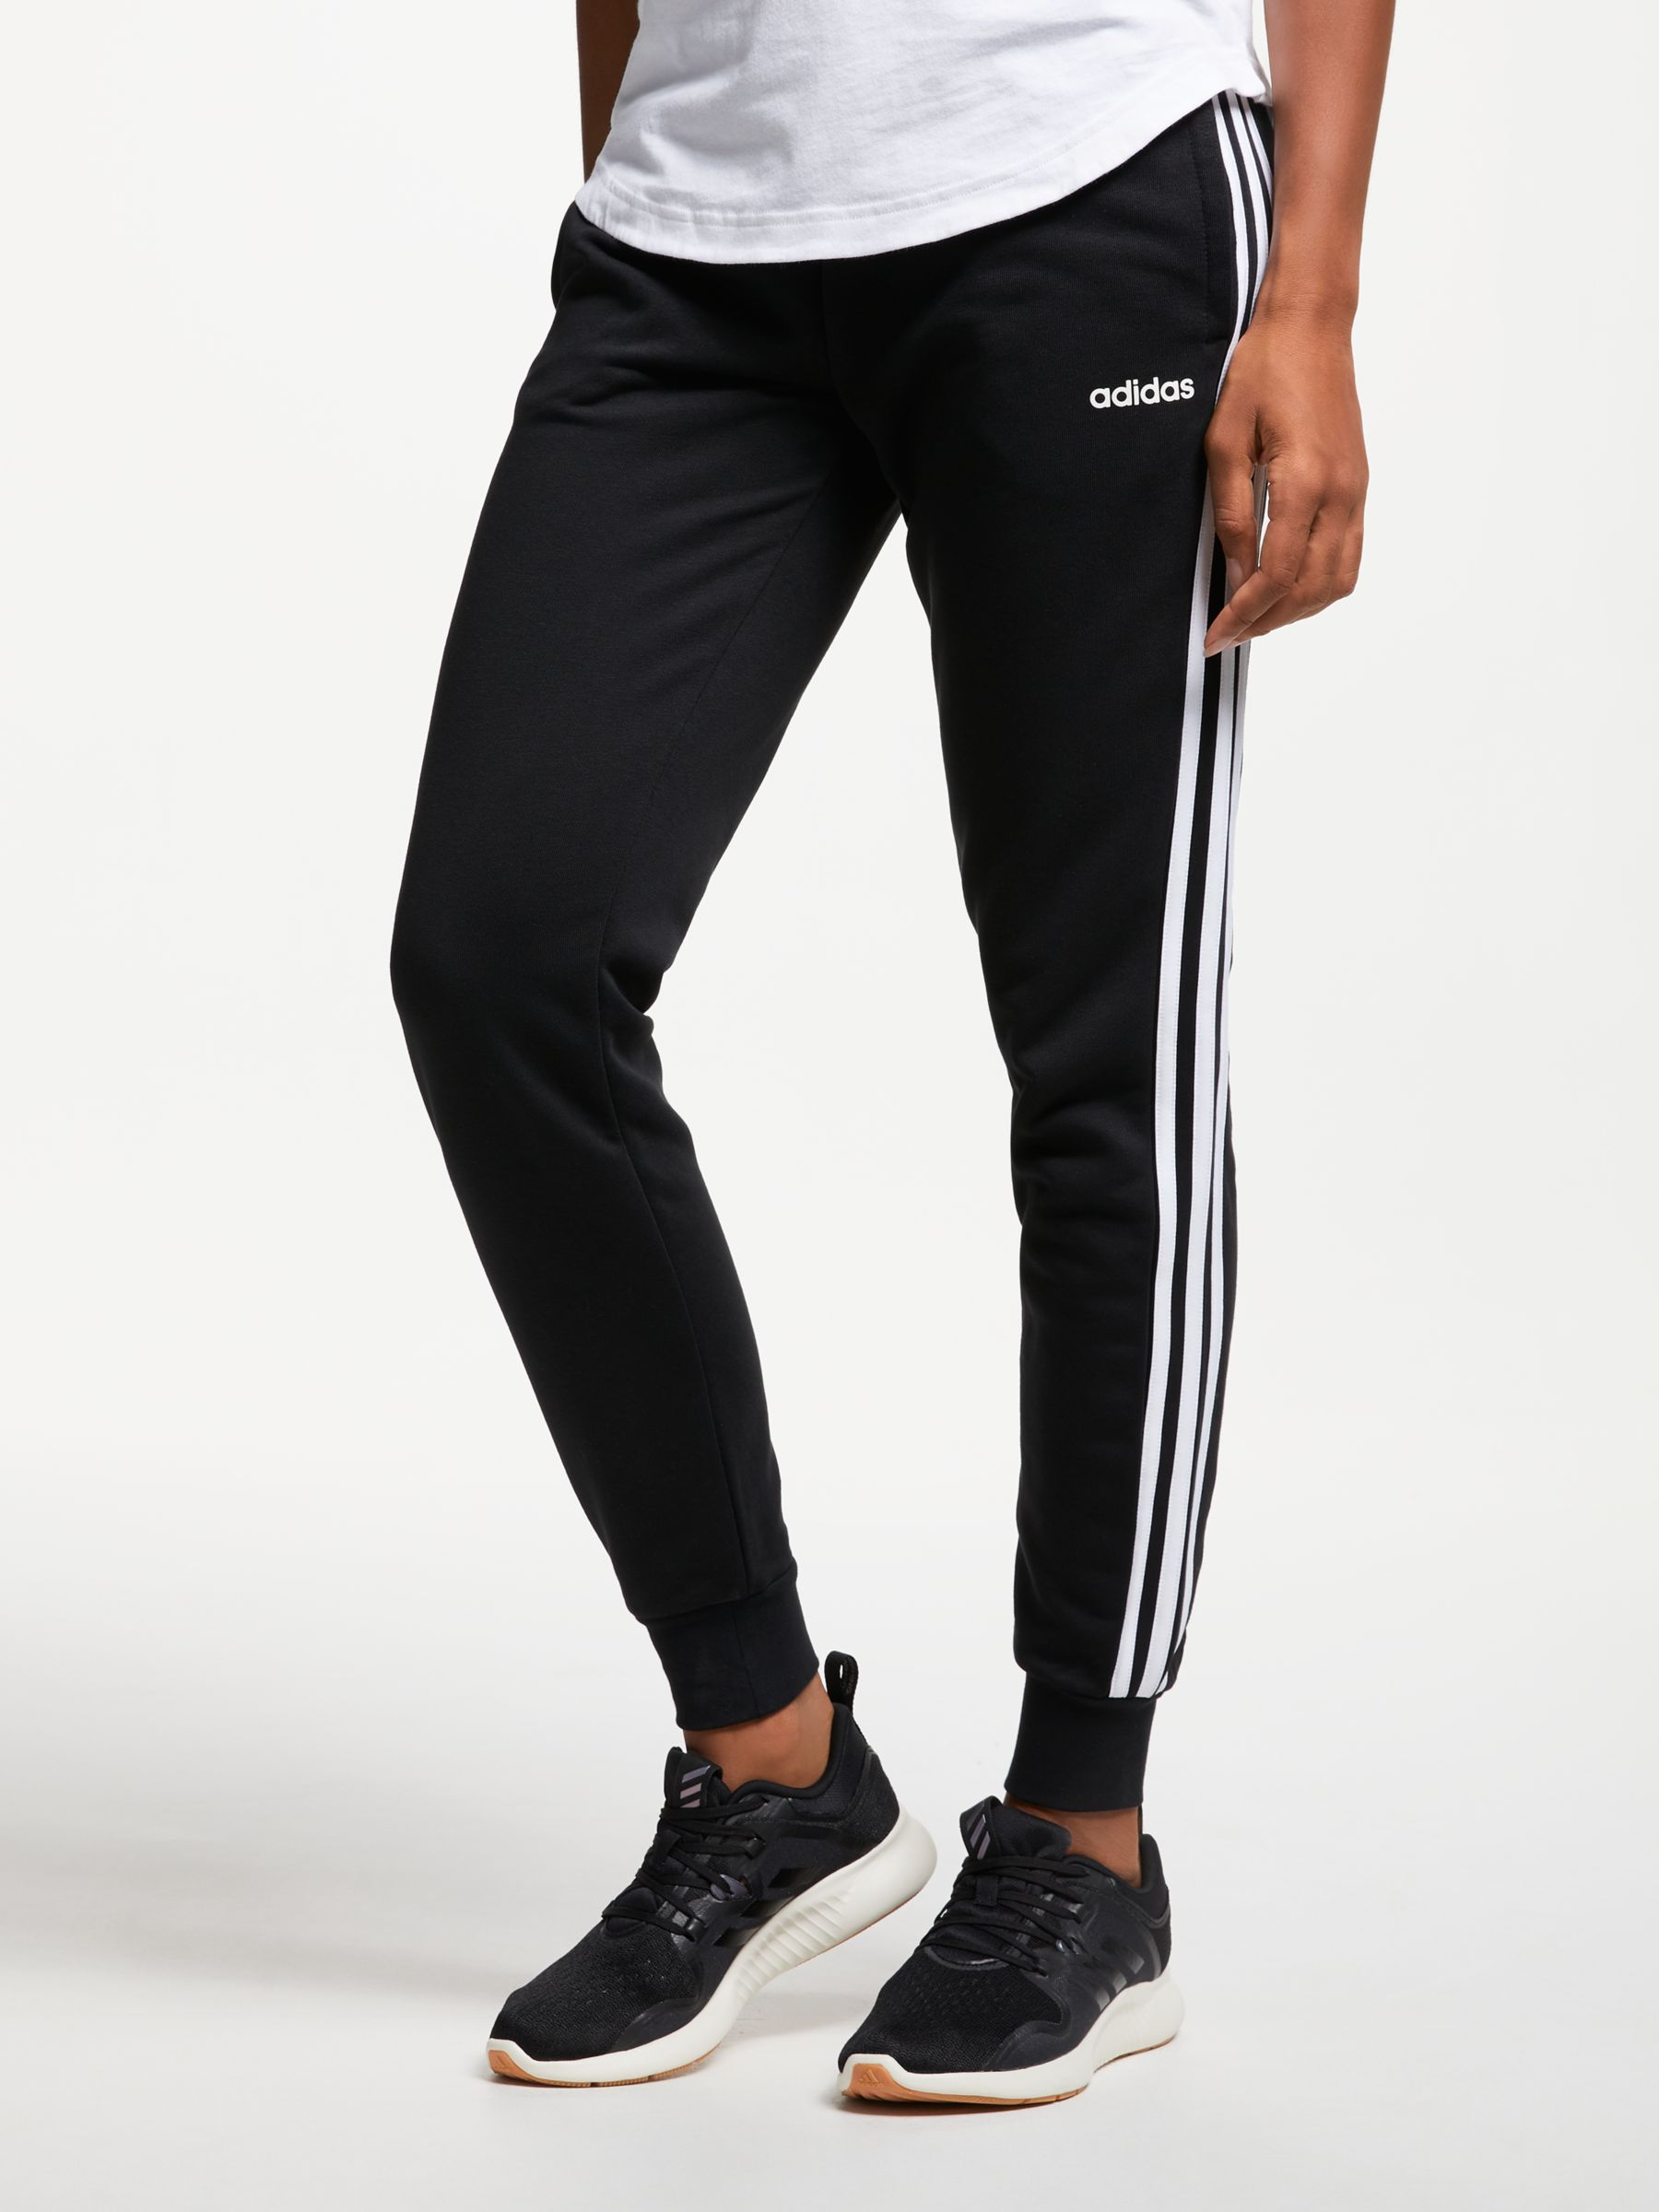 Adidas adidas Essentials 3-Stripes Tracksuit Bottoms, Black